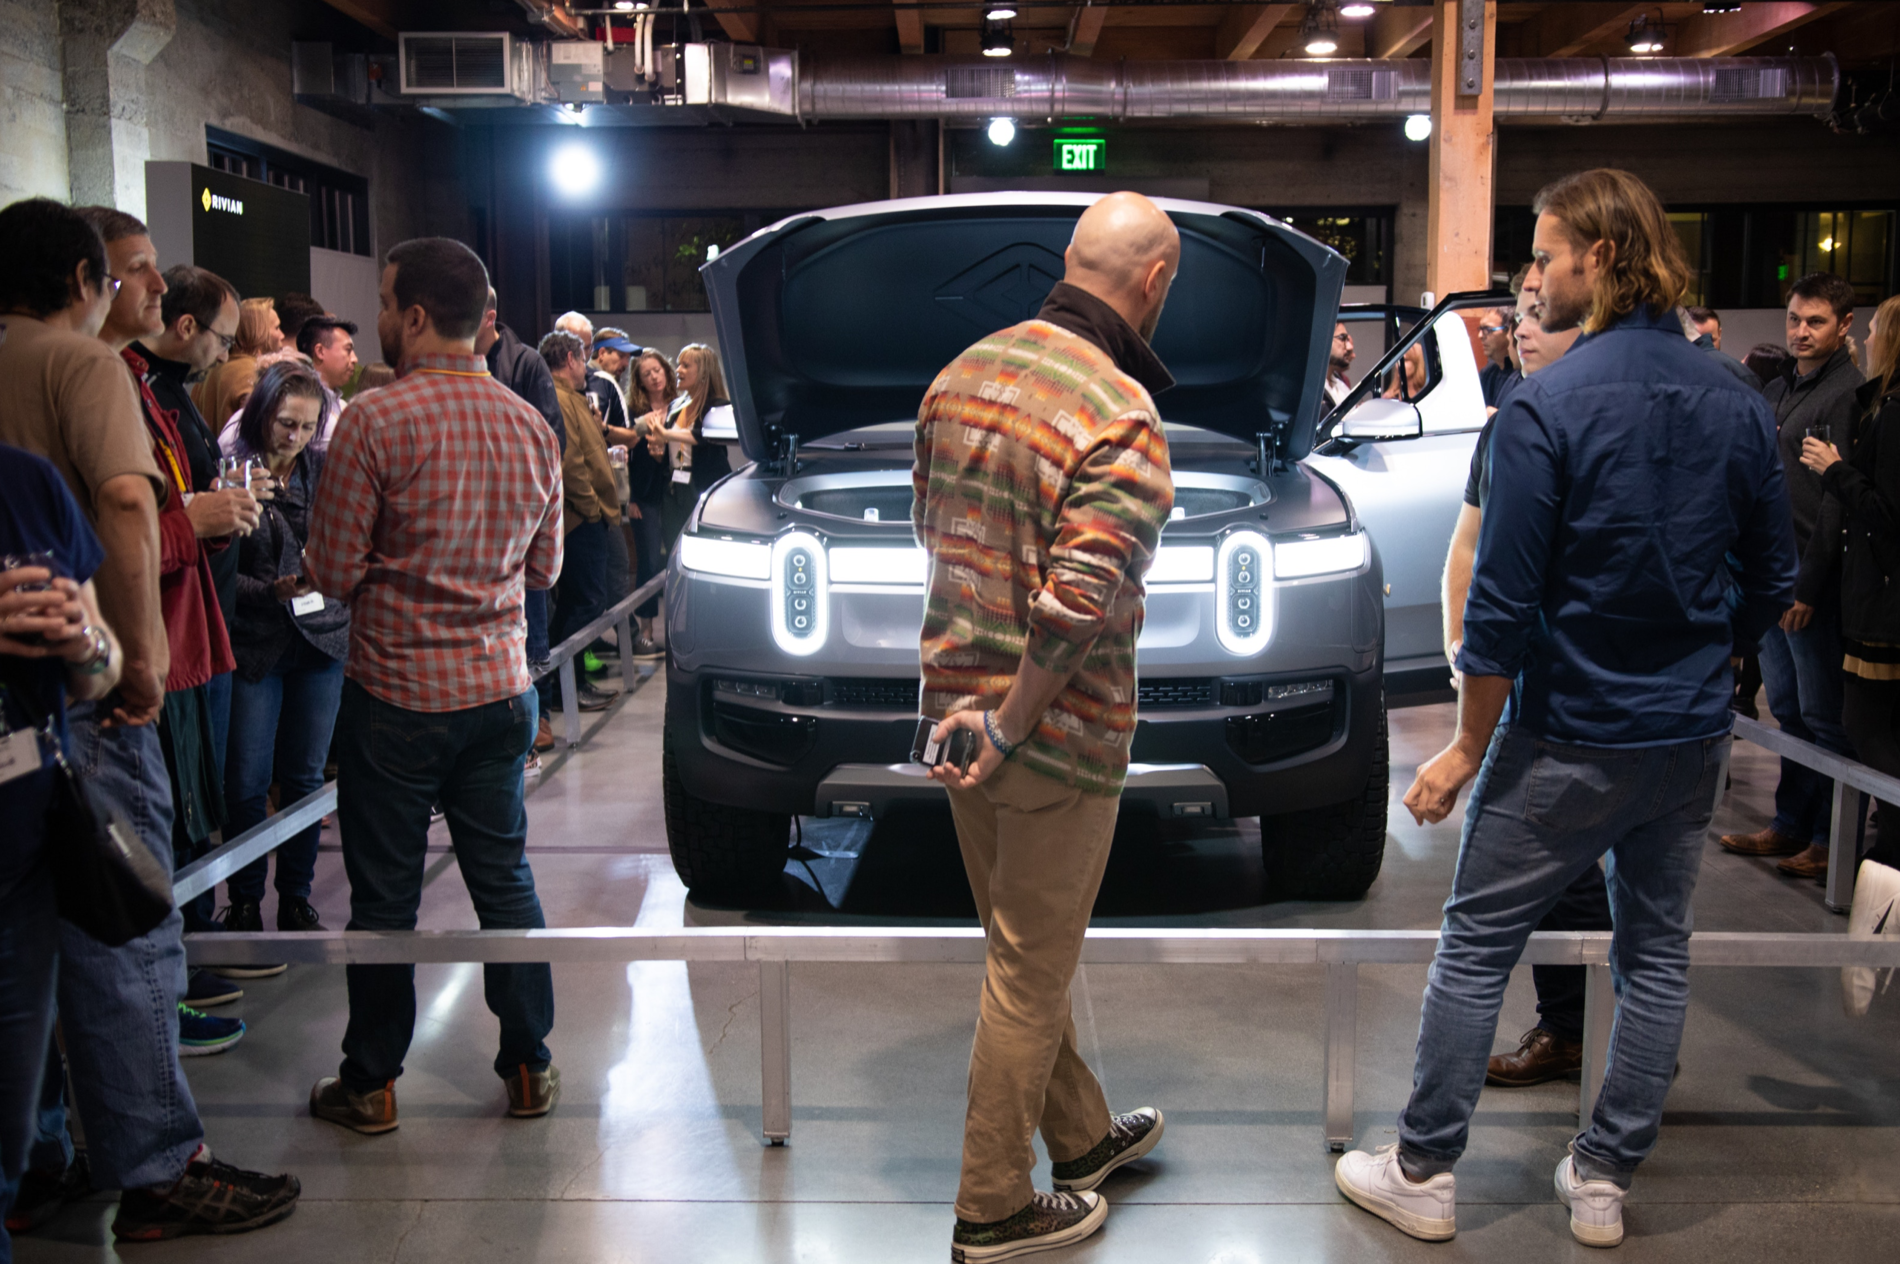 Blue_Rivian_Seattle_Event_Screen Shot 2019-09-30 at 2.15.52 PM.png